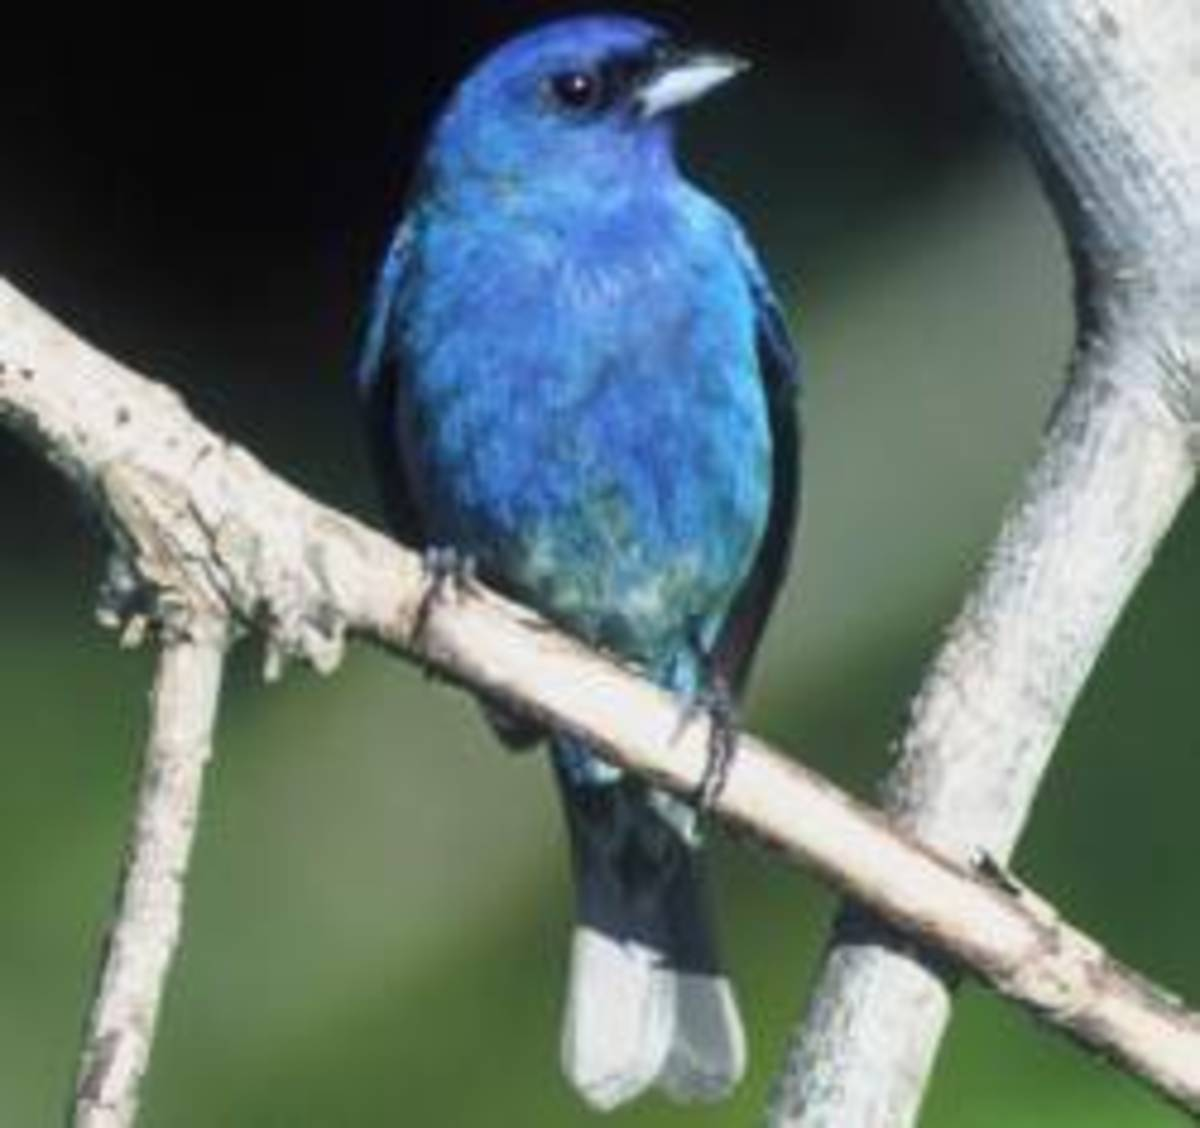 Though more vivid in color than the blue bird the indigo bunting is far less common in Asheville backyards.